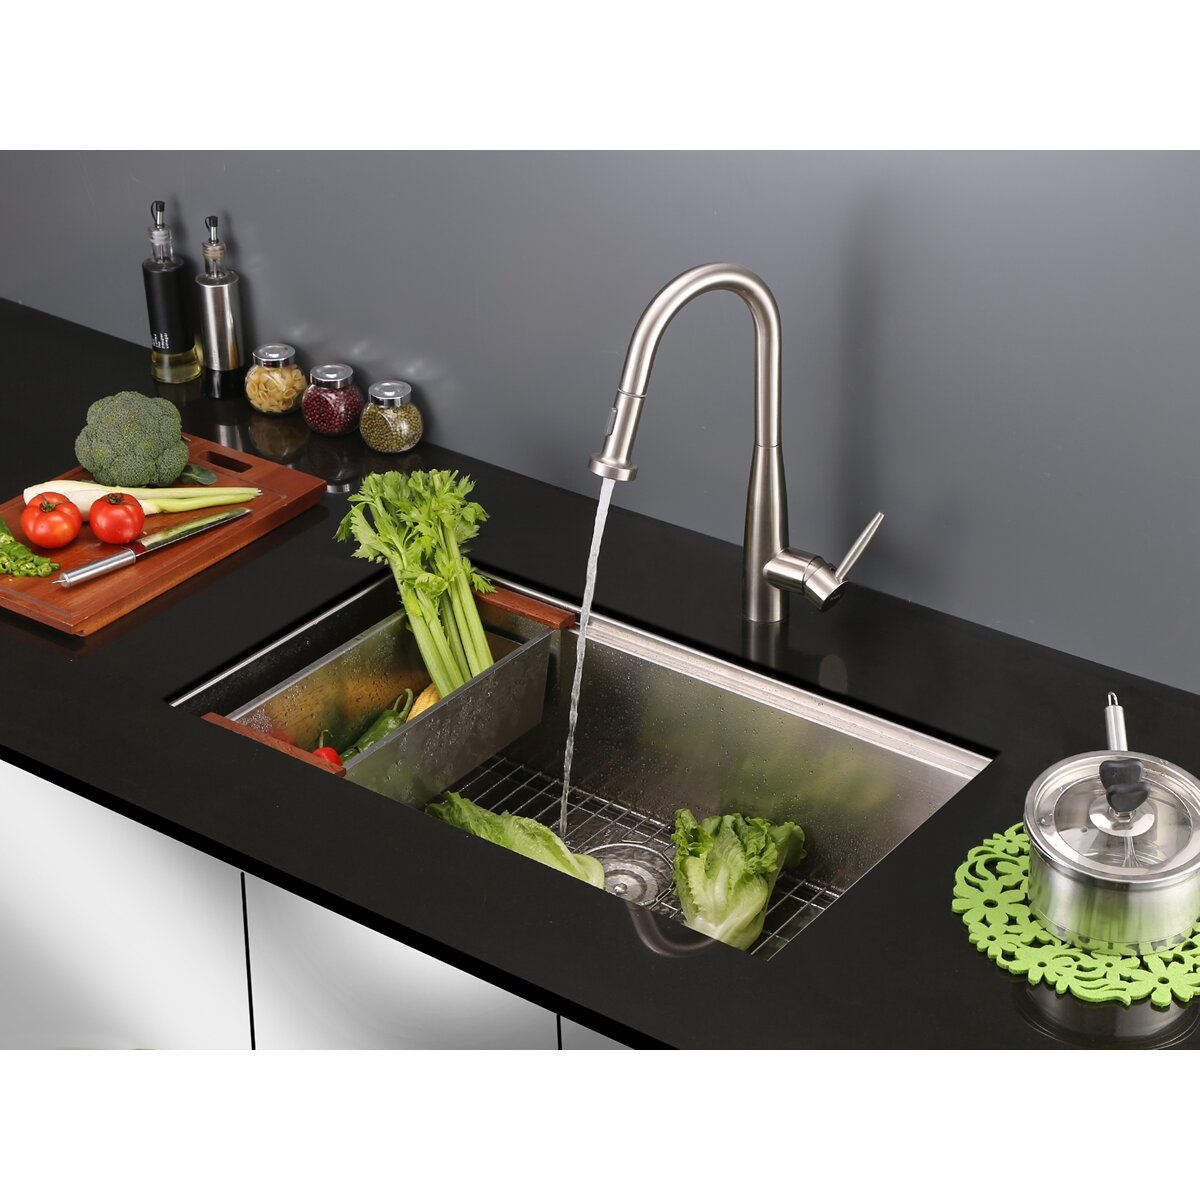 ruvati turino single handle kitchen faucet with pull out ruvati turino single handle kitchen faucet with pull out